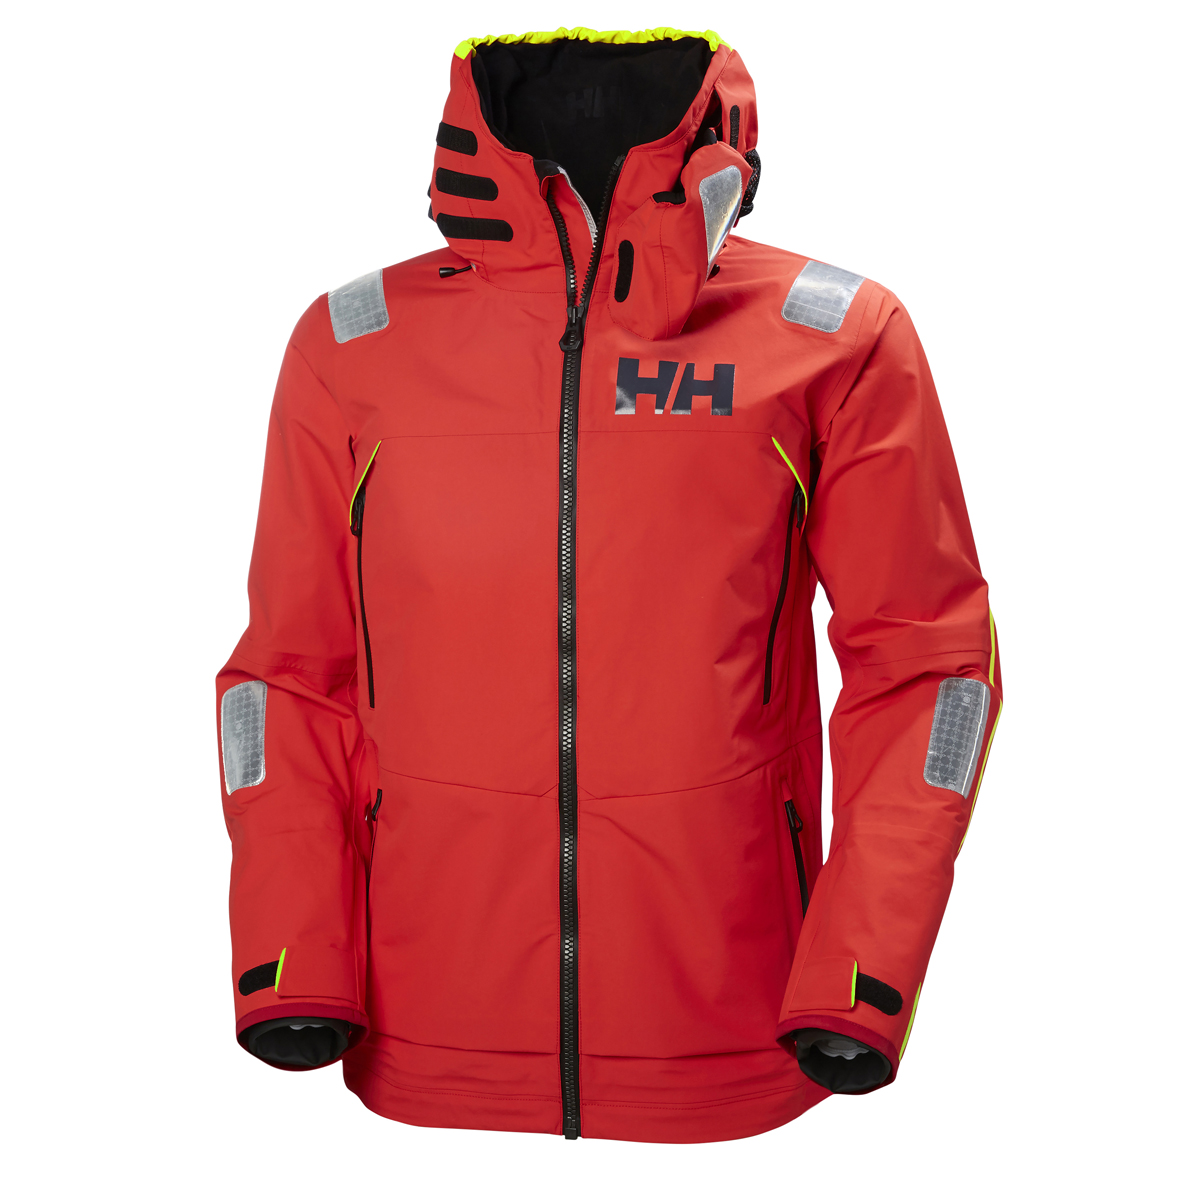 HELLY HANSEN AEGIR RACE JACKET (33869)